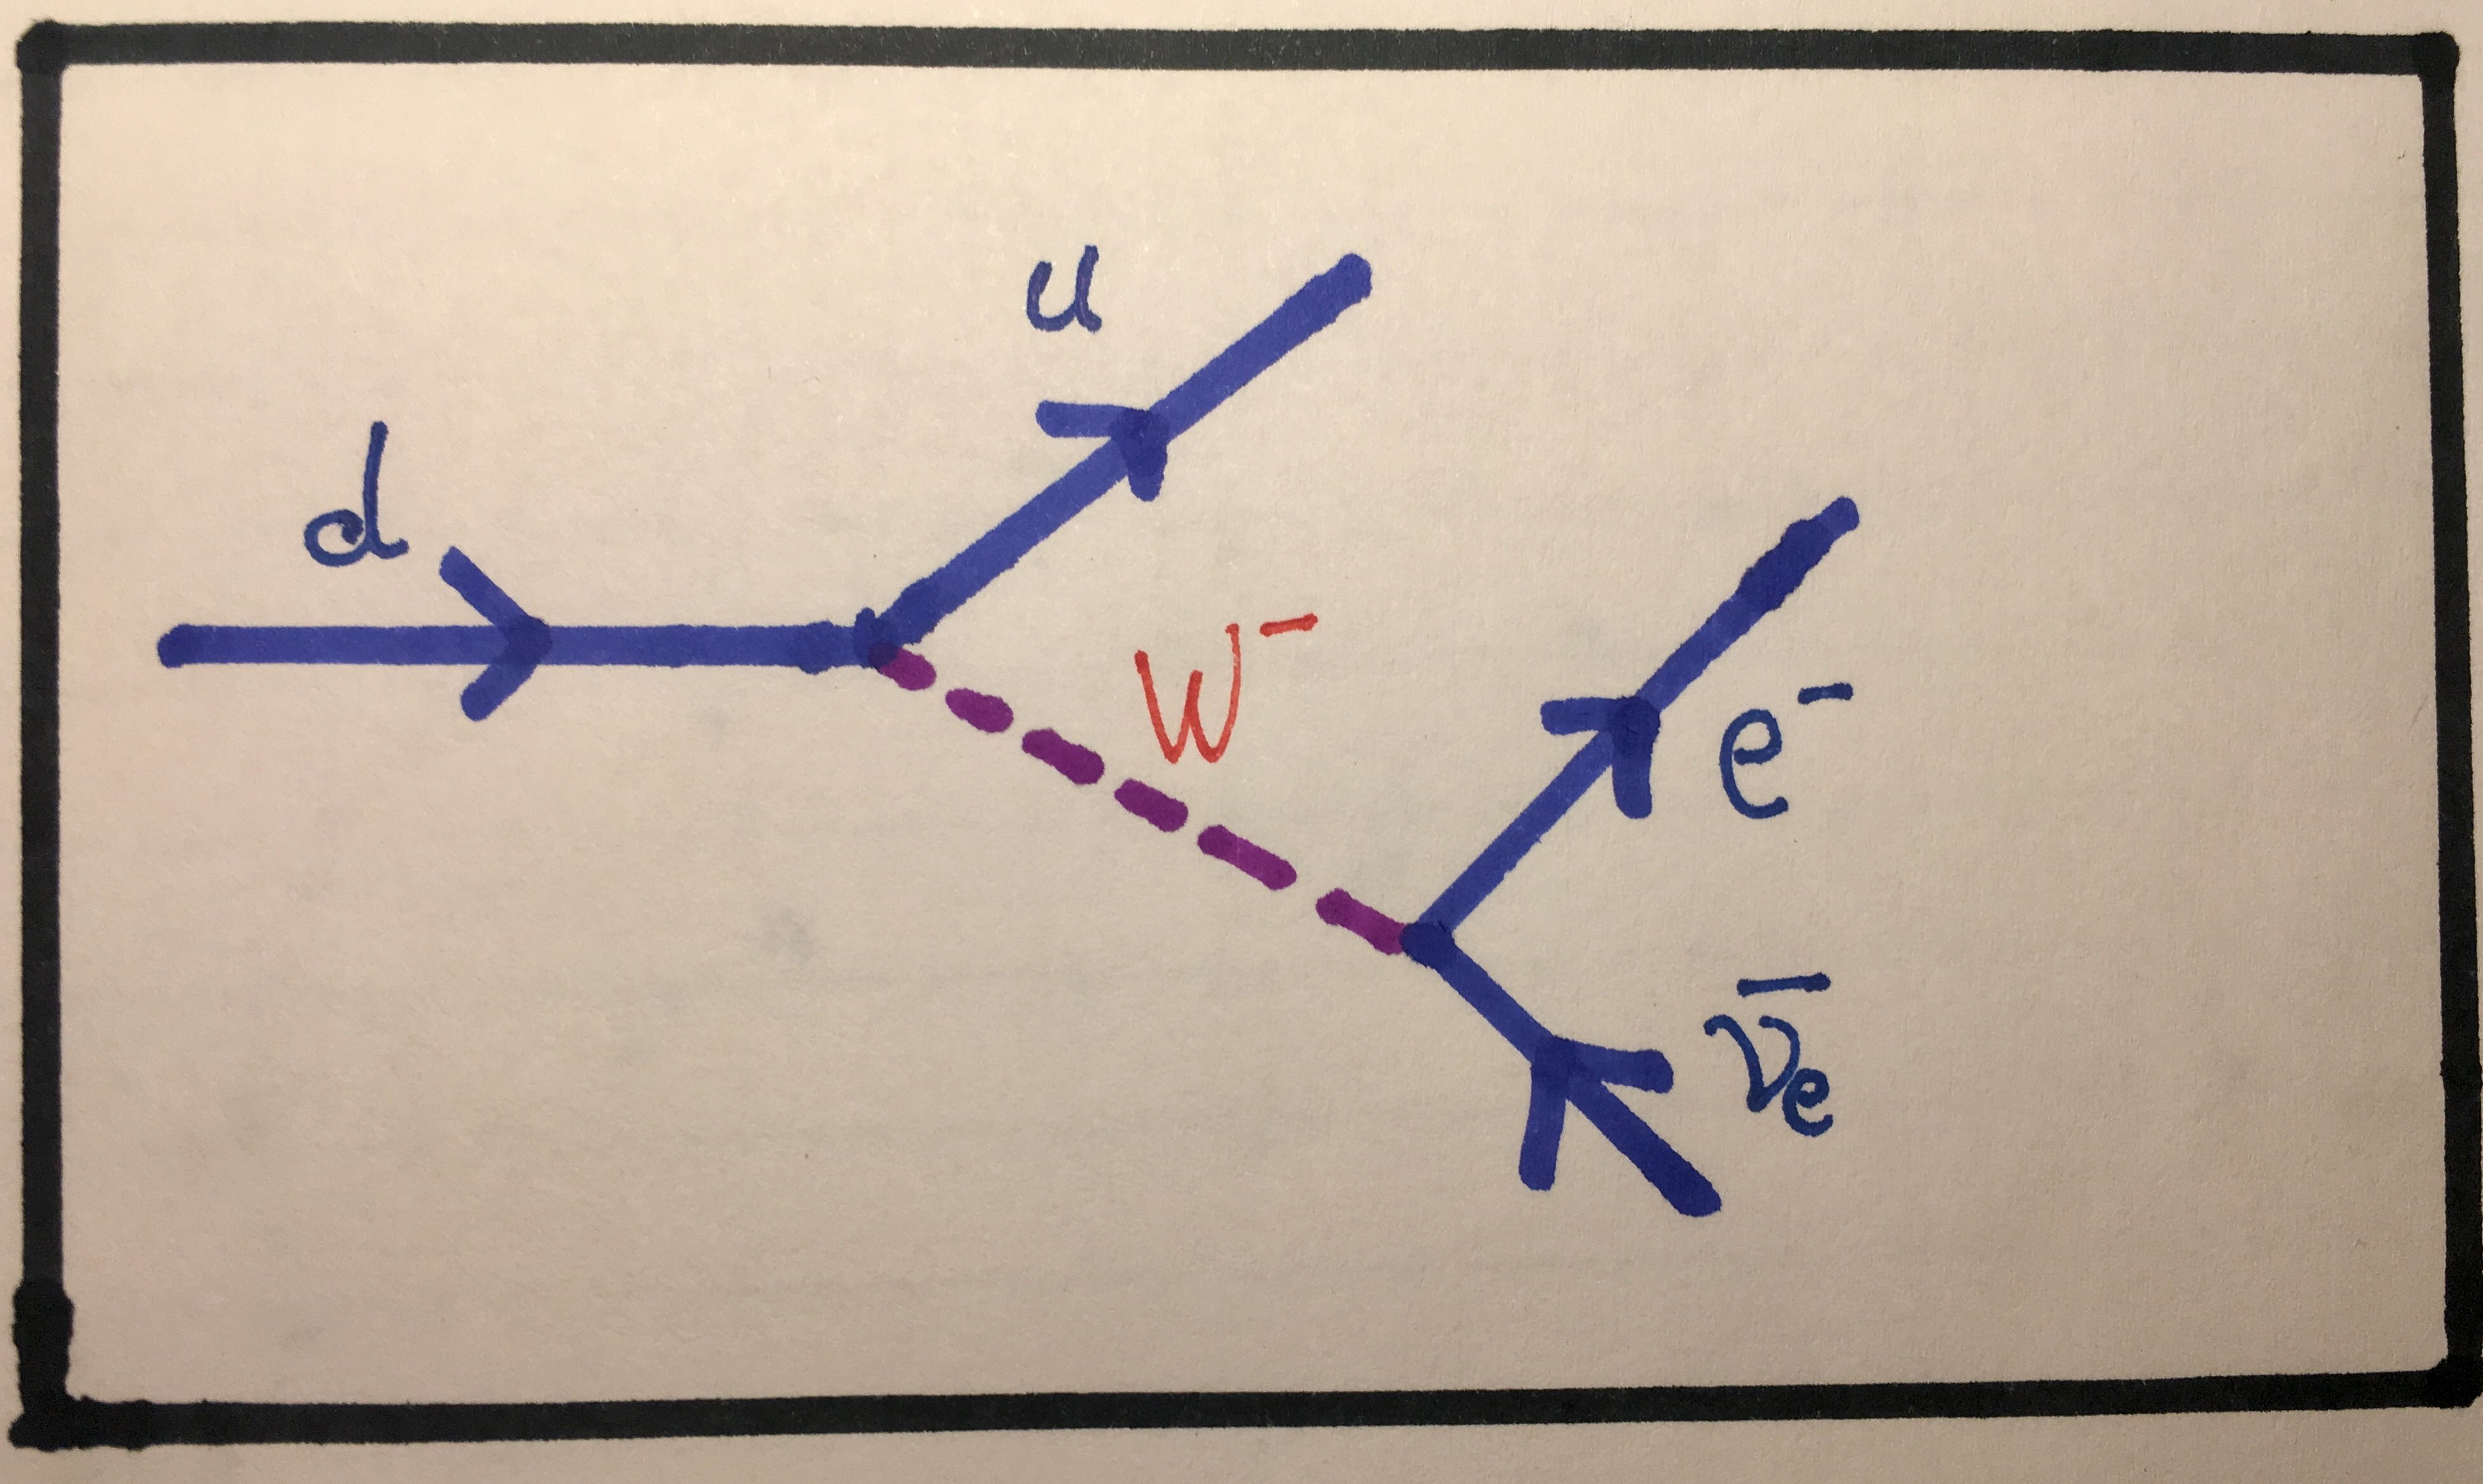 Prelude to pp part 3 visualising interactions with feynman diagrams feynman diagram showing the process of beta decay notice that a w boson is involved here this implies that this interaction occurs through the weak pooptronica